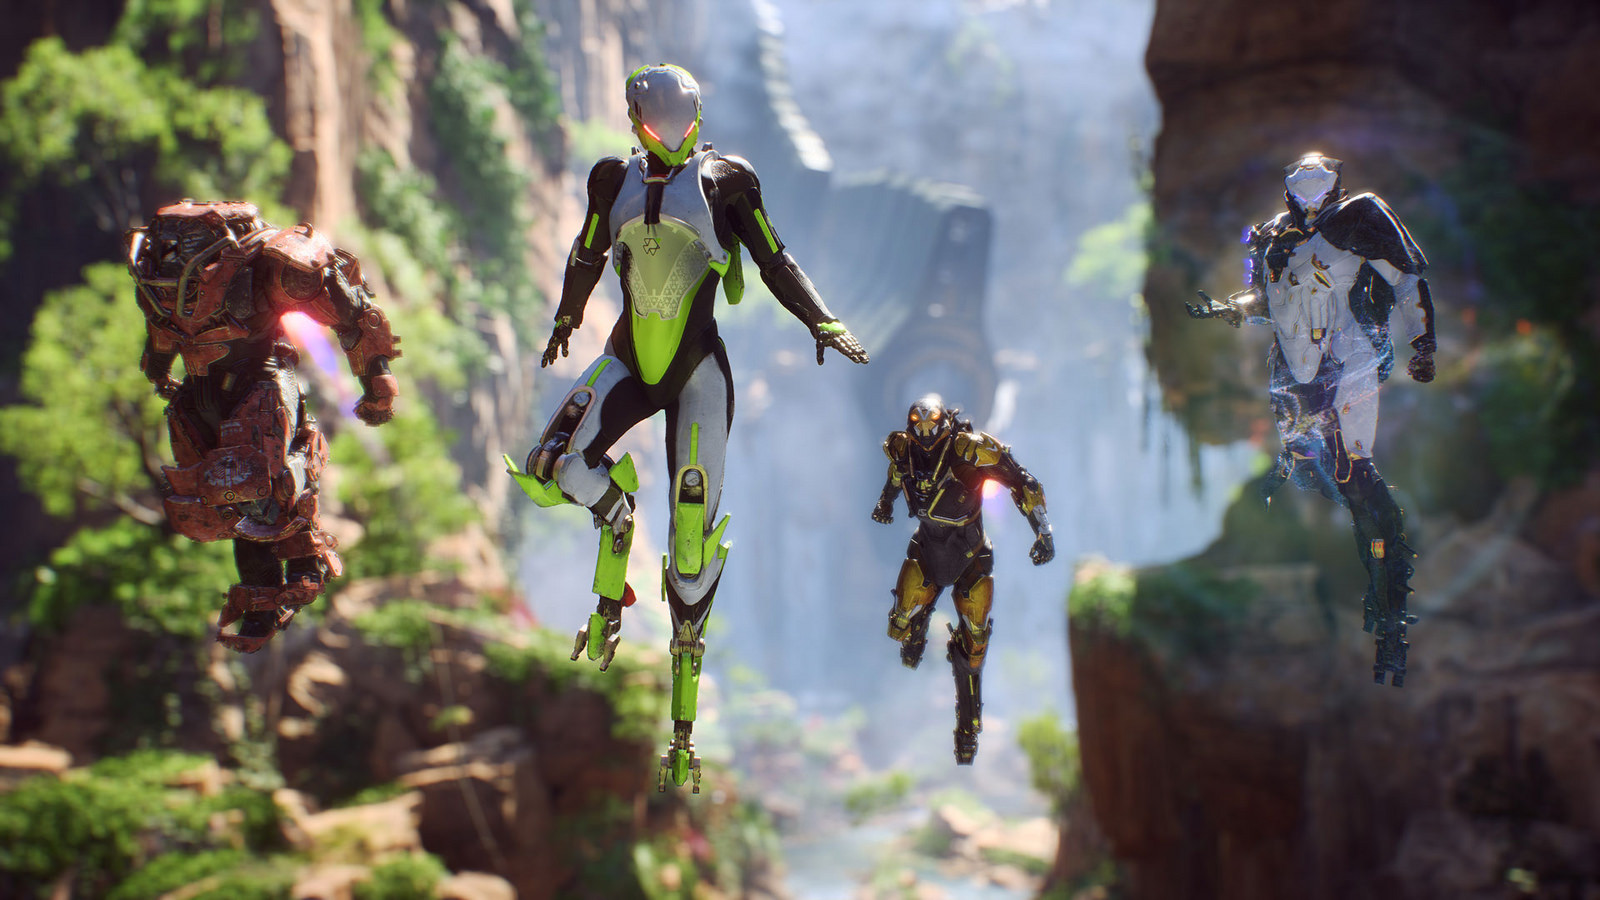 All activities in Anthem have matchmaking, BioWare confirms